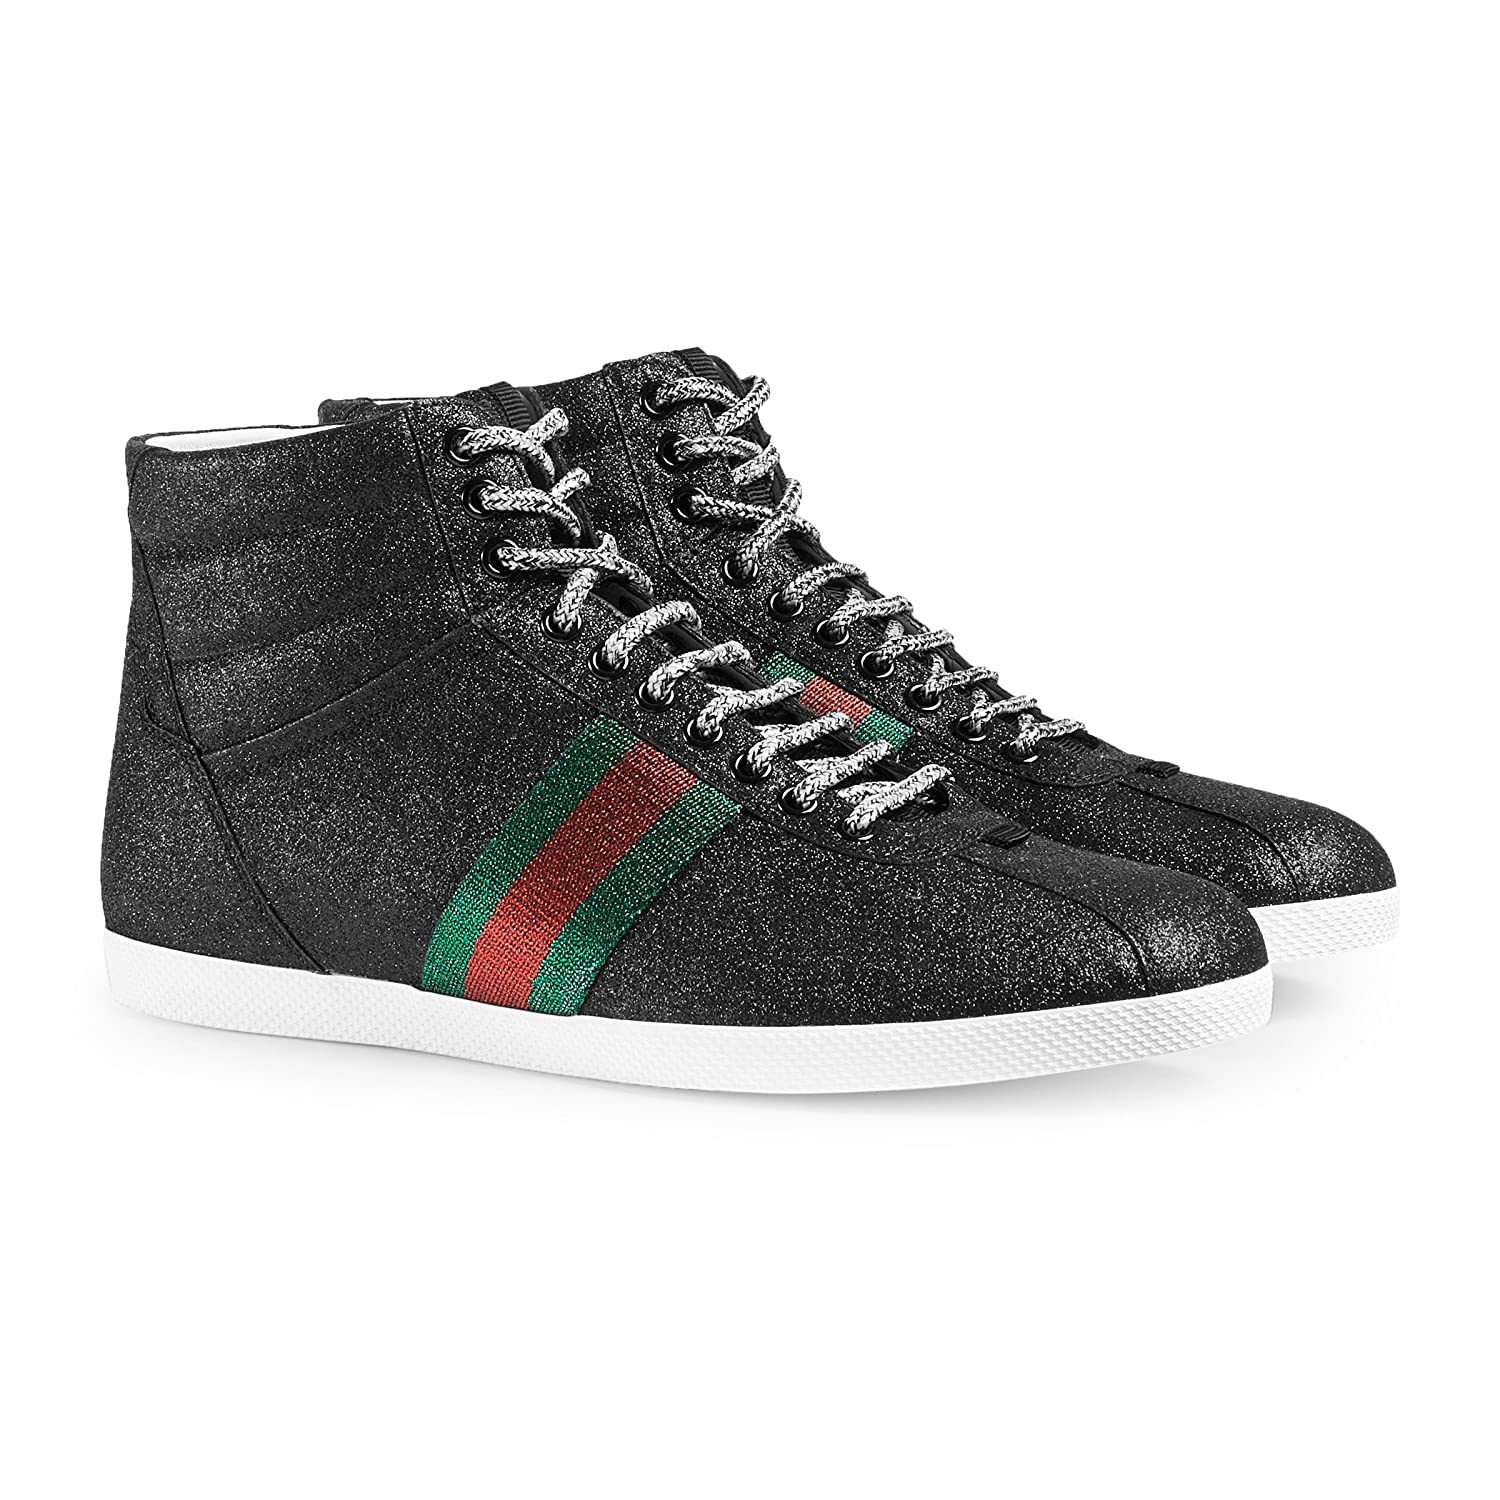 a0e3fdfb2ee001 Gucci gree red green signature web detail. Gucci embossed logo on the back.  Shoe and packaging show Gucci UK sizing information